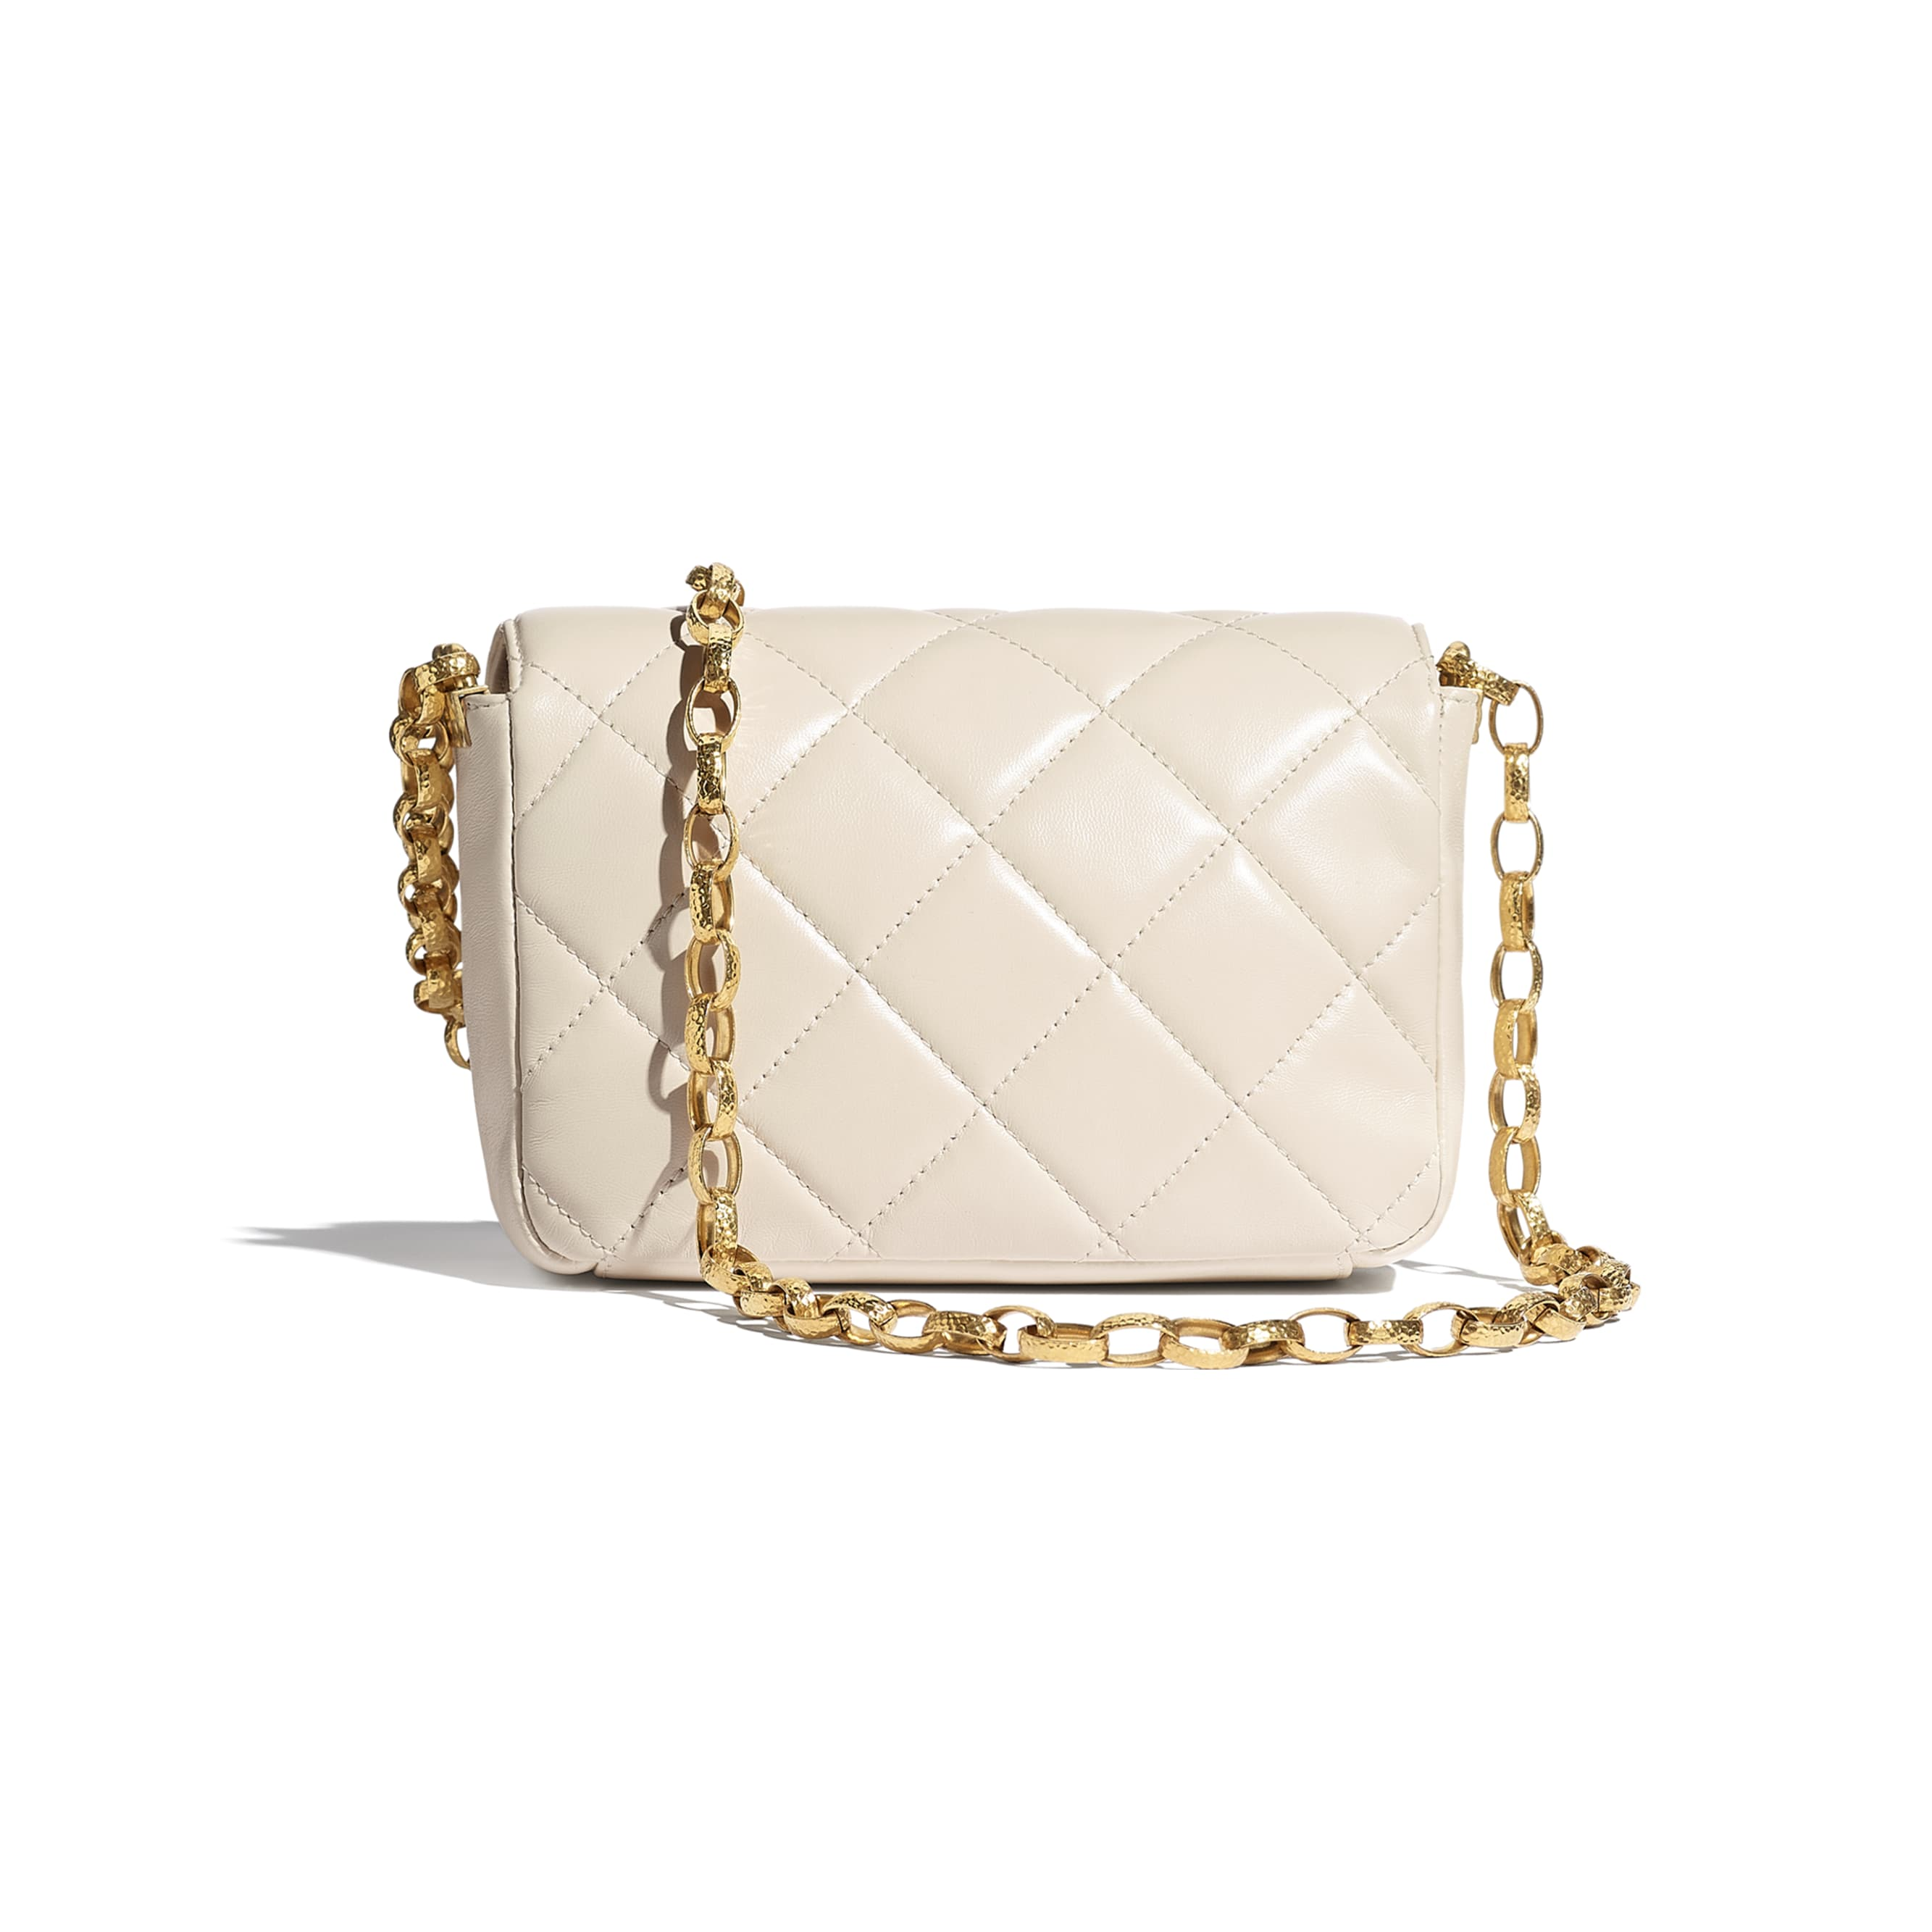 Small Flap Bag - Ecru - Lambskin - CHANEL - Alternative view - see standard sized version